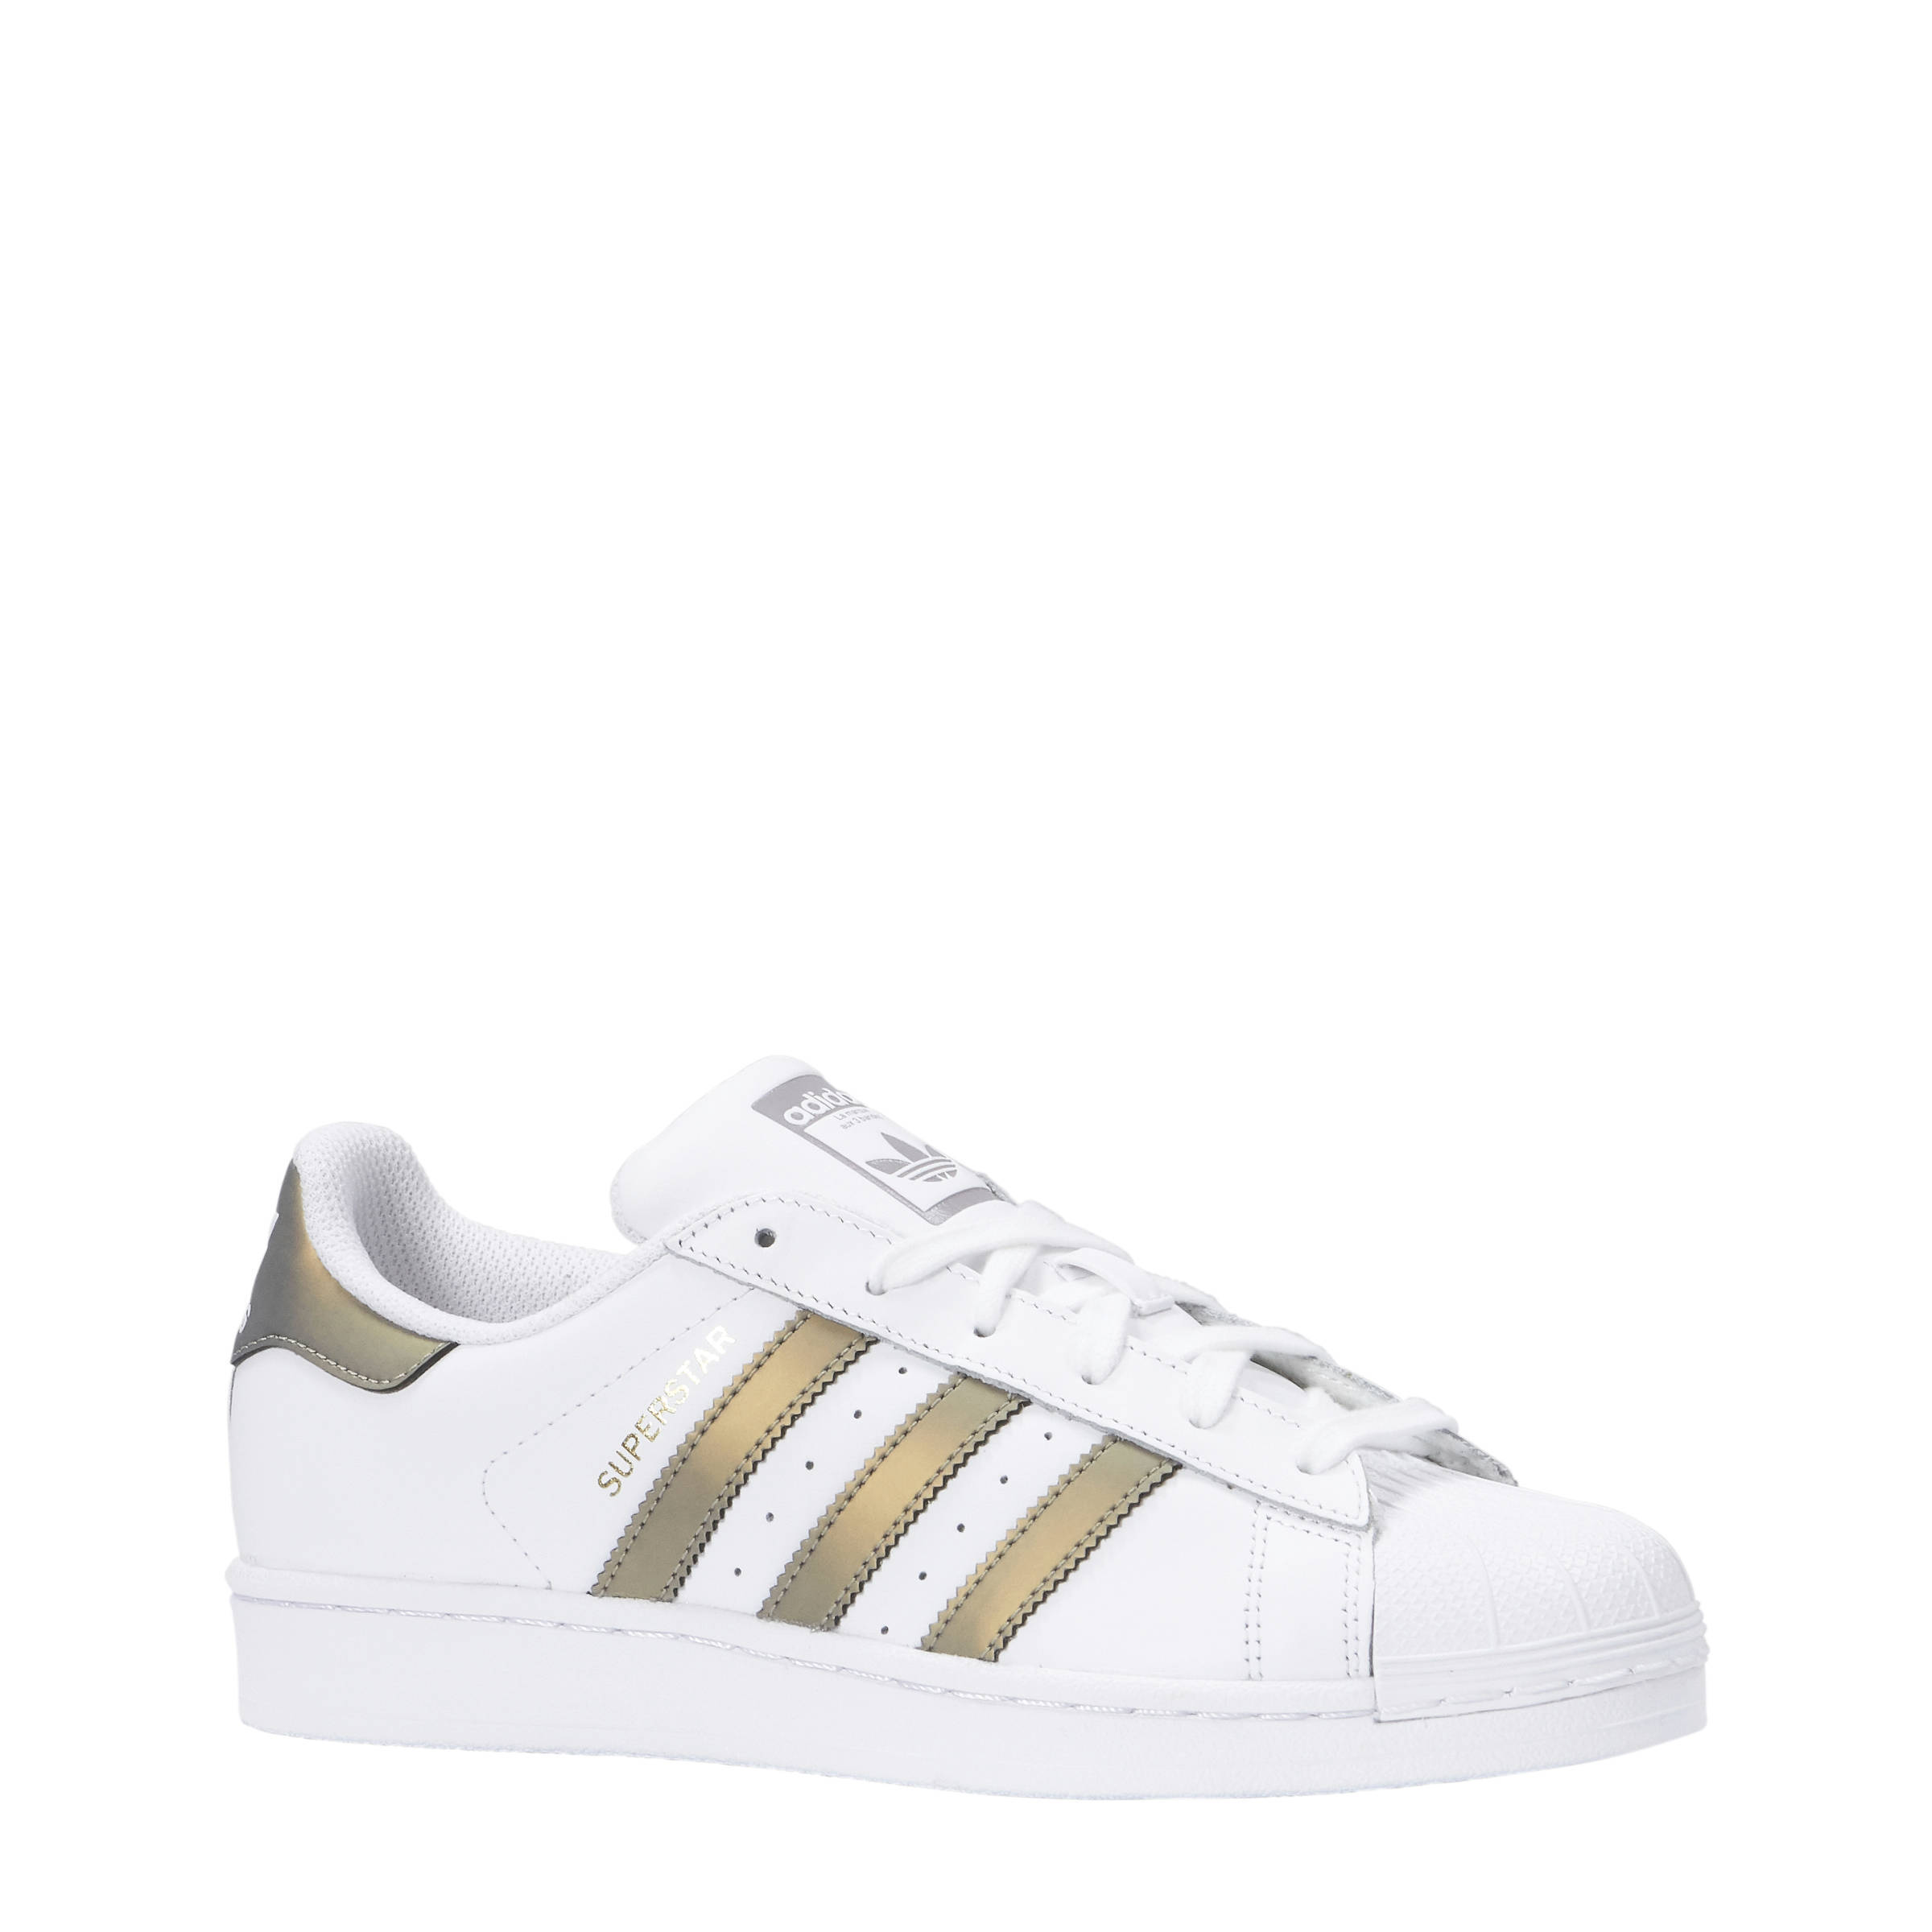 Adidas Originals Superstar in 49762 Lathen for €55.99 for